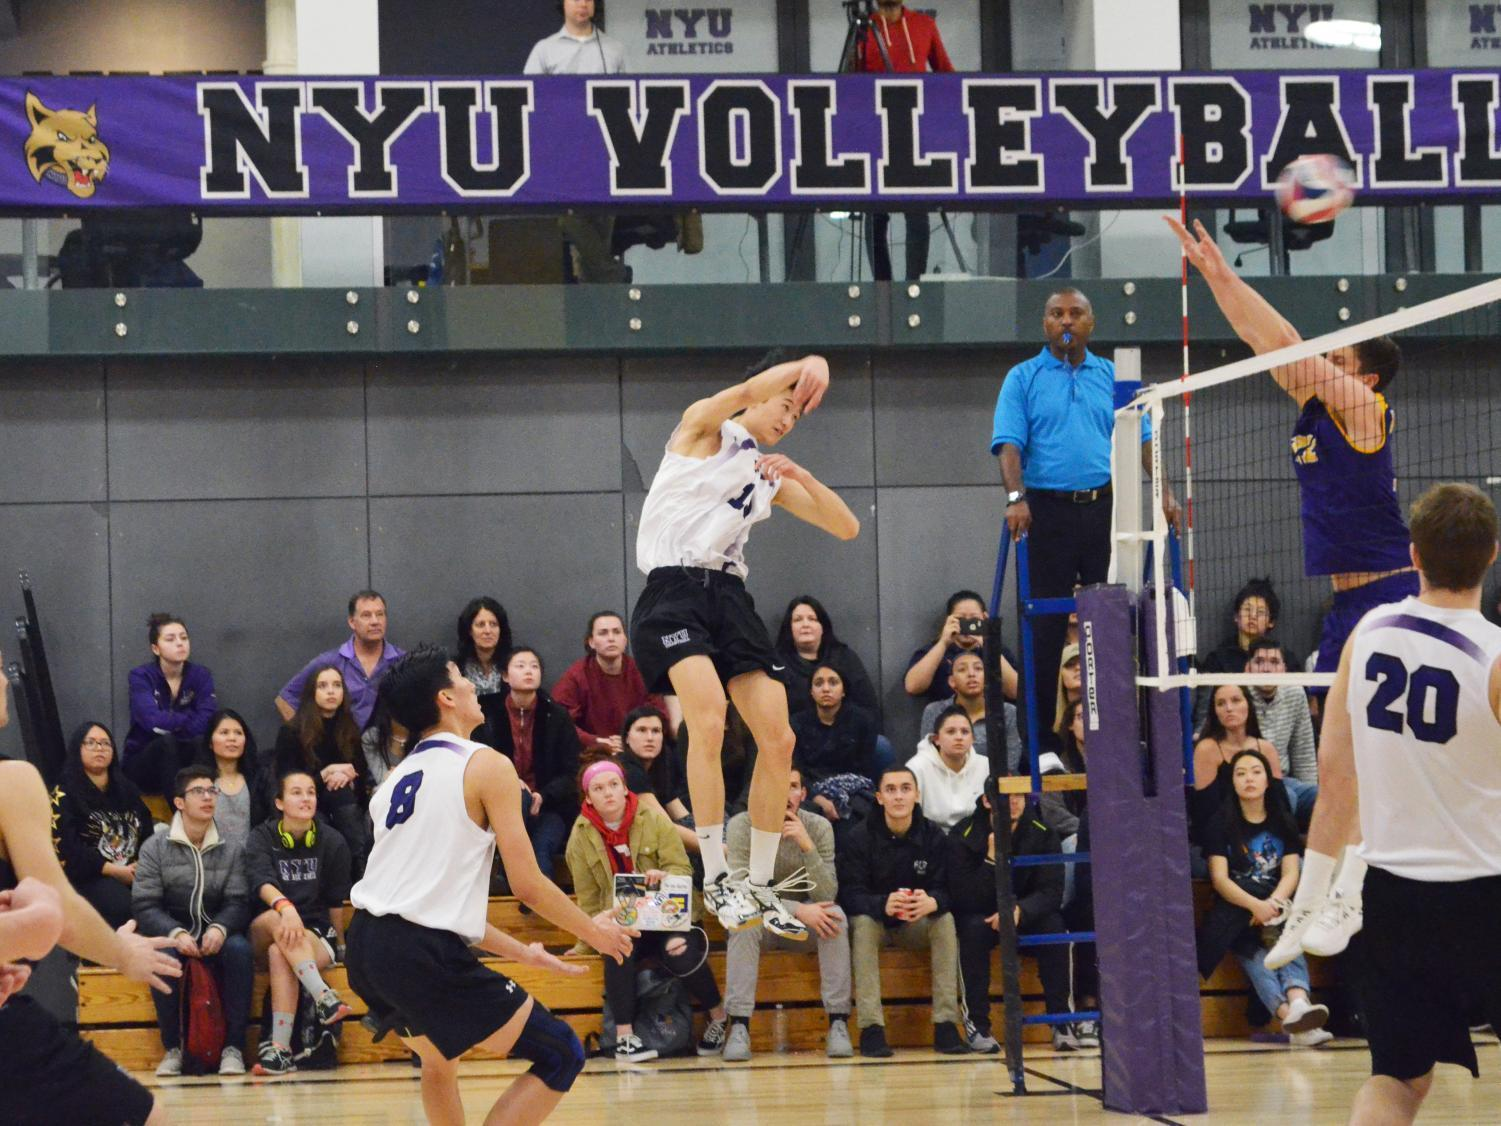 The Men's Volleyball game on March 20.